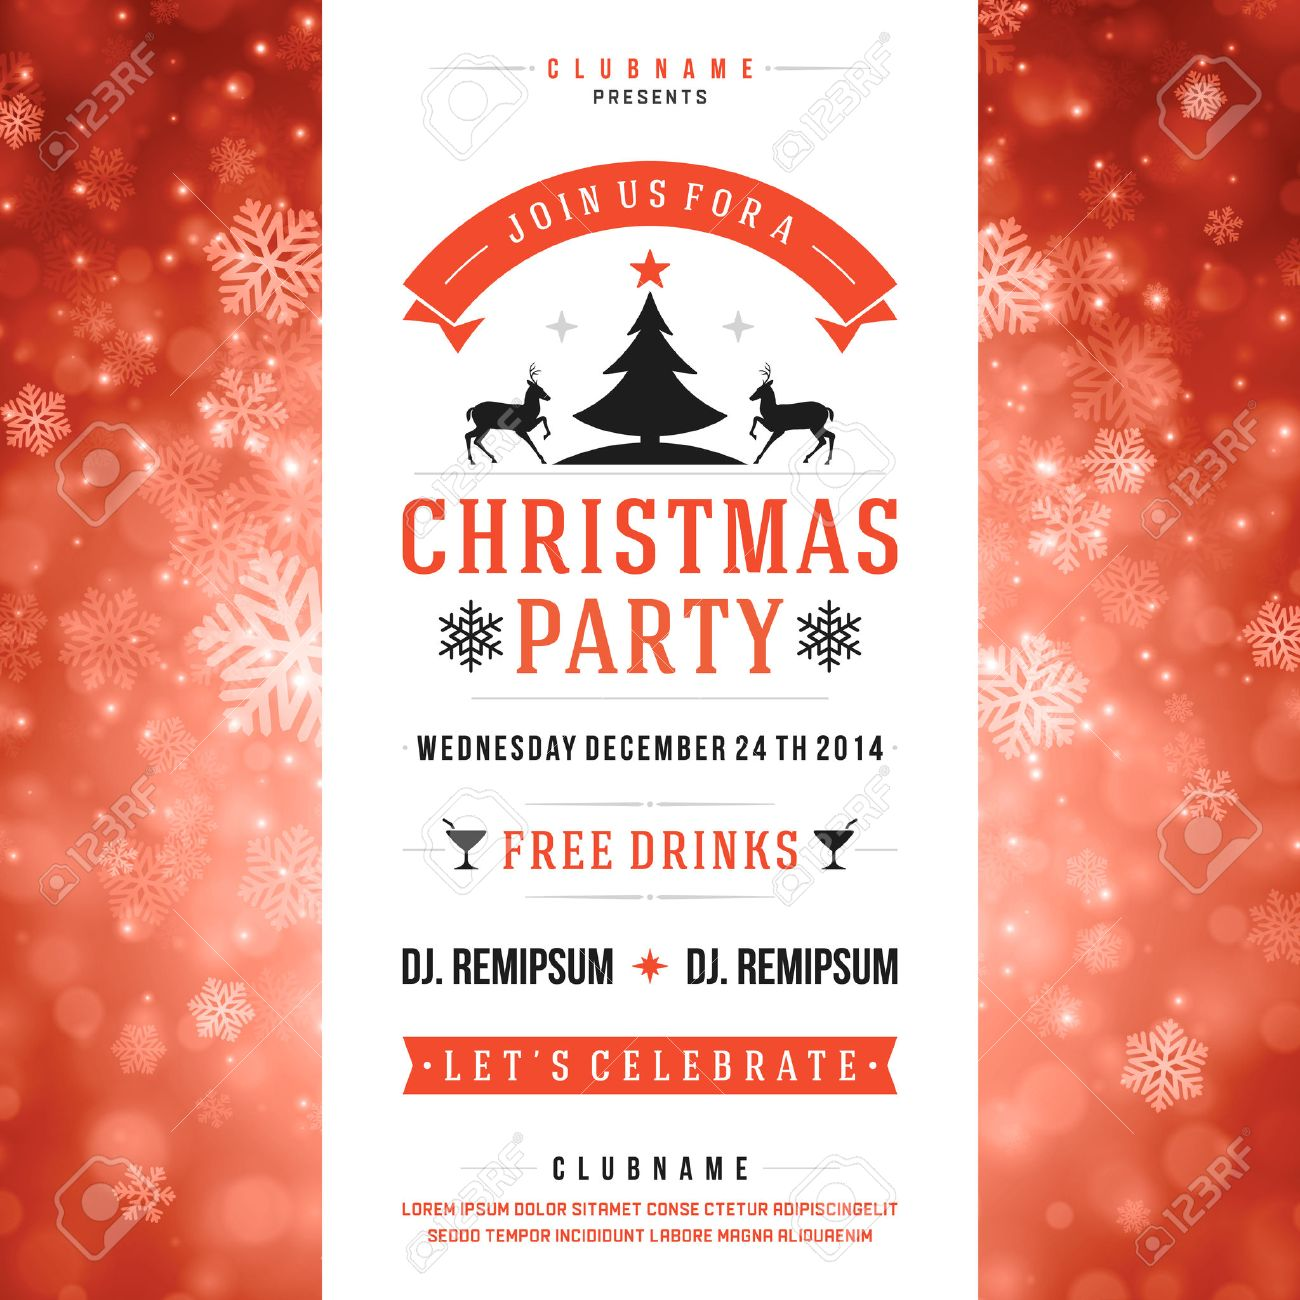 Christmas Party Invitation Retro Typography And Ornament ...